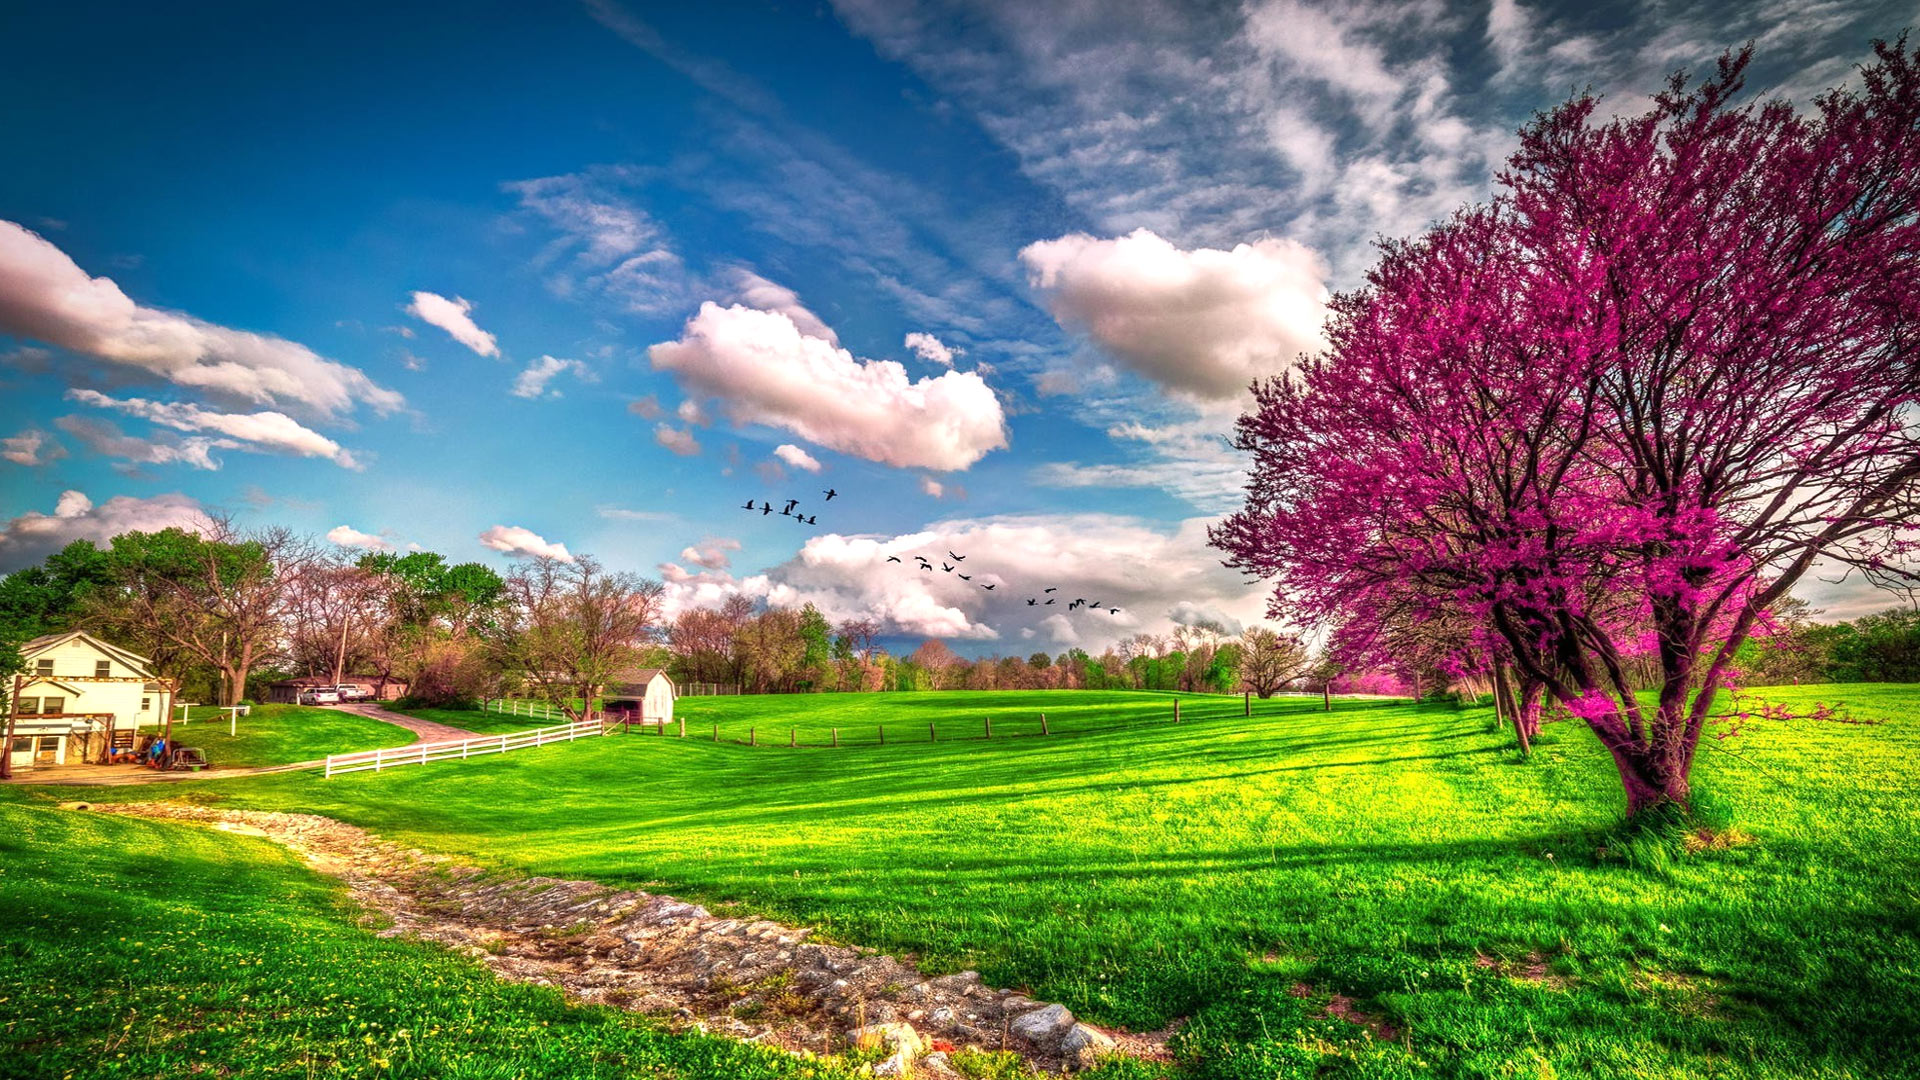 Panoramic Wallpaper Fall Spring Desktop Wallpaper Hd Pixelstalk Net